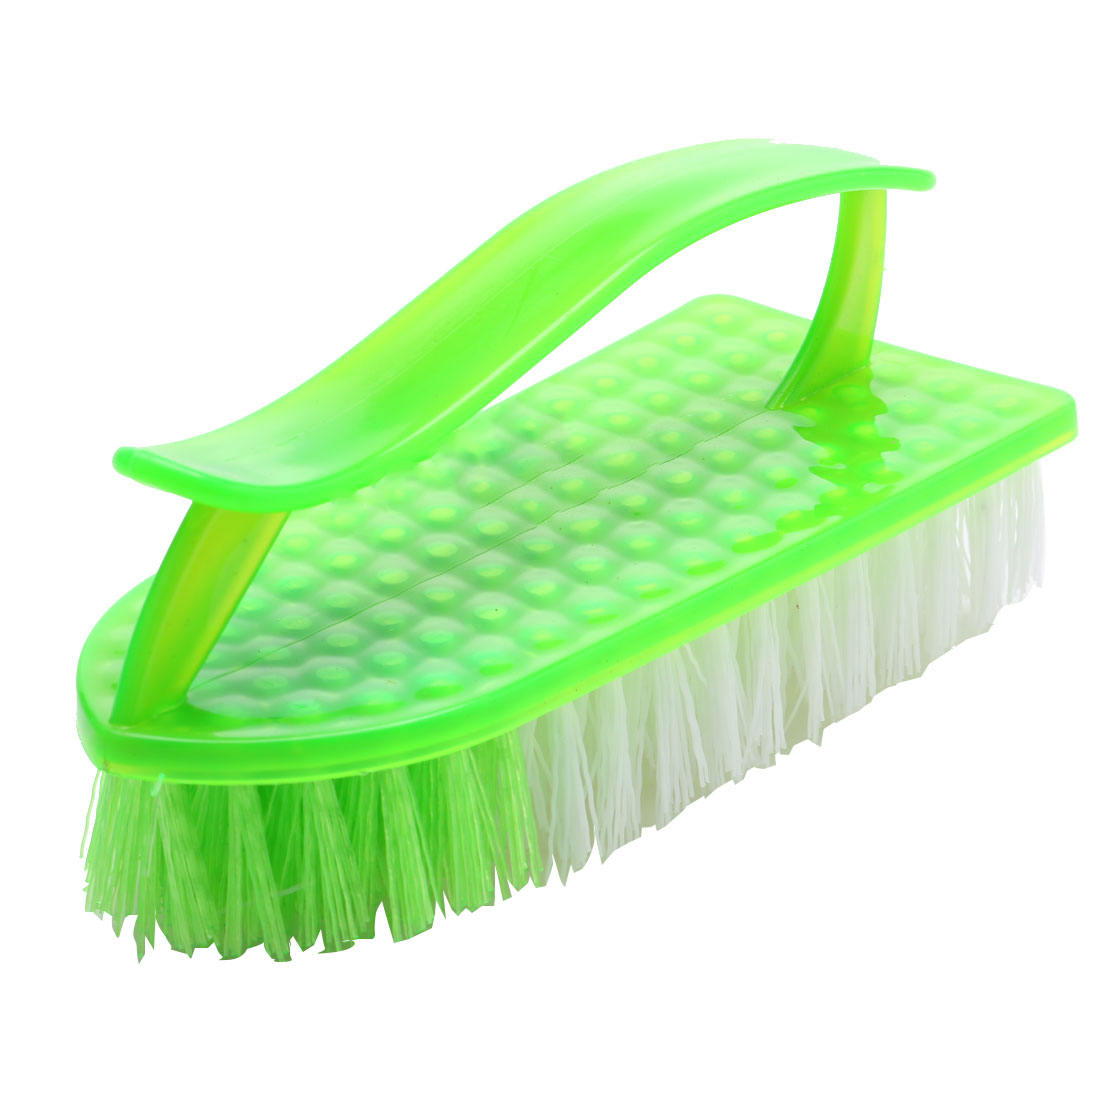 Home Plastic Handle Clothes Floor Cleaning Scrubbing Brush Green White